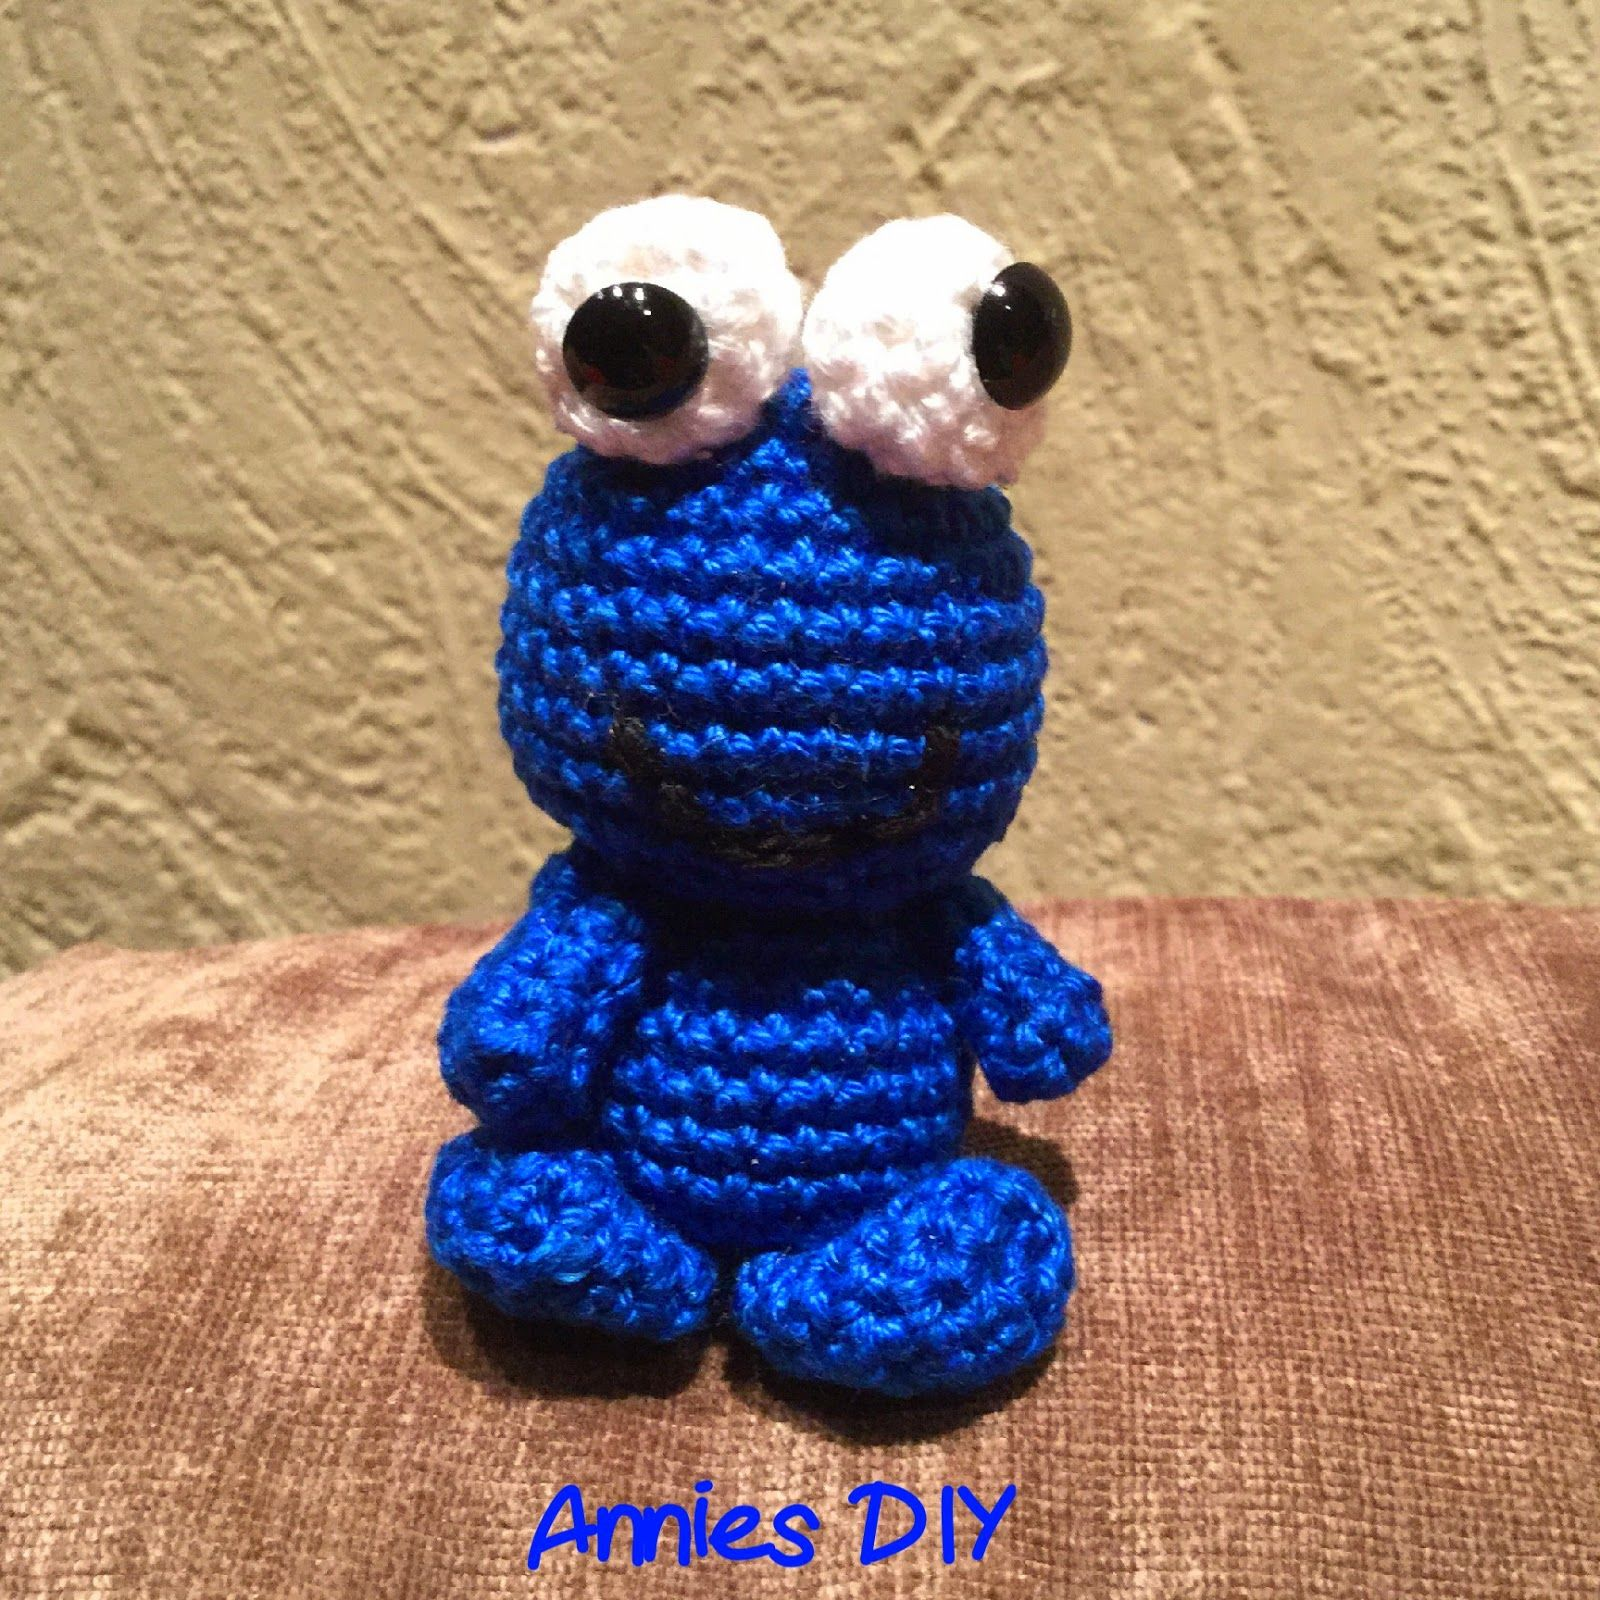 Annies Diy Amigurumi Krümelmonster Häkeln Crochet Cookie Monster